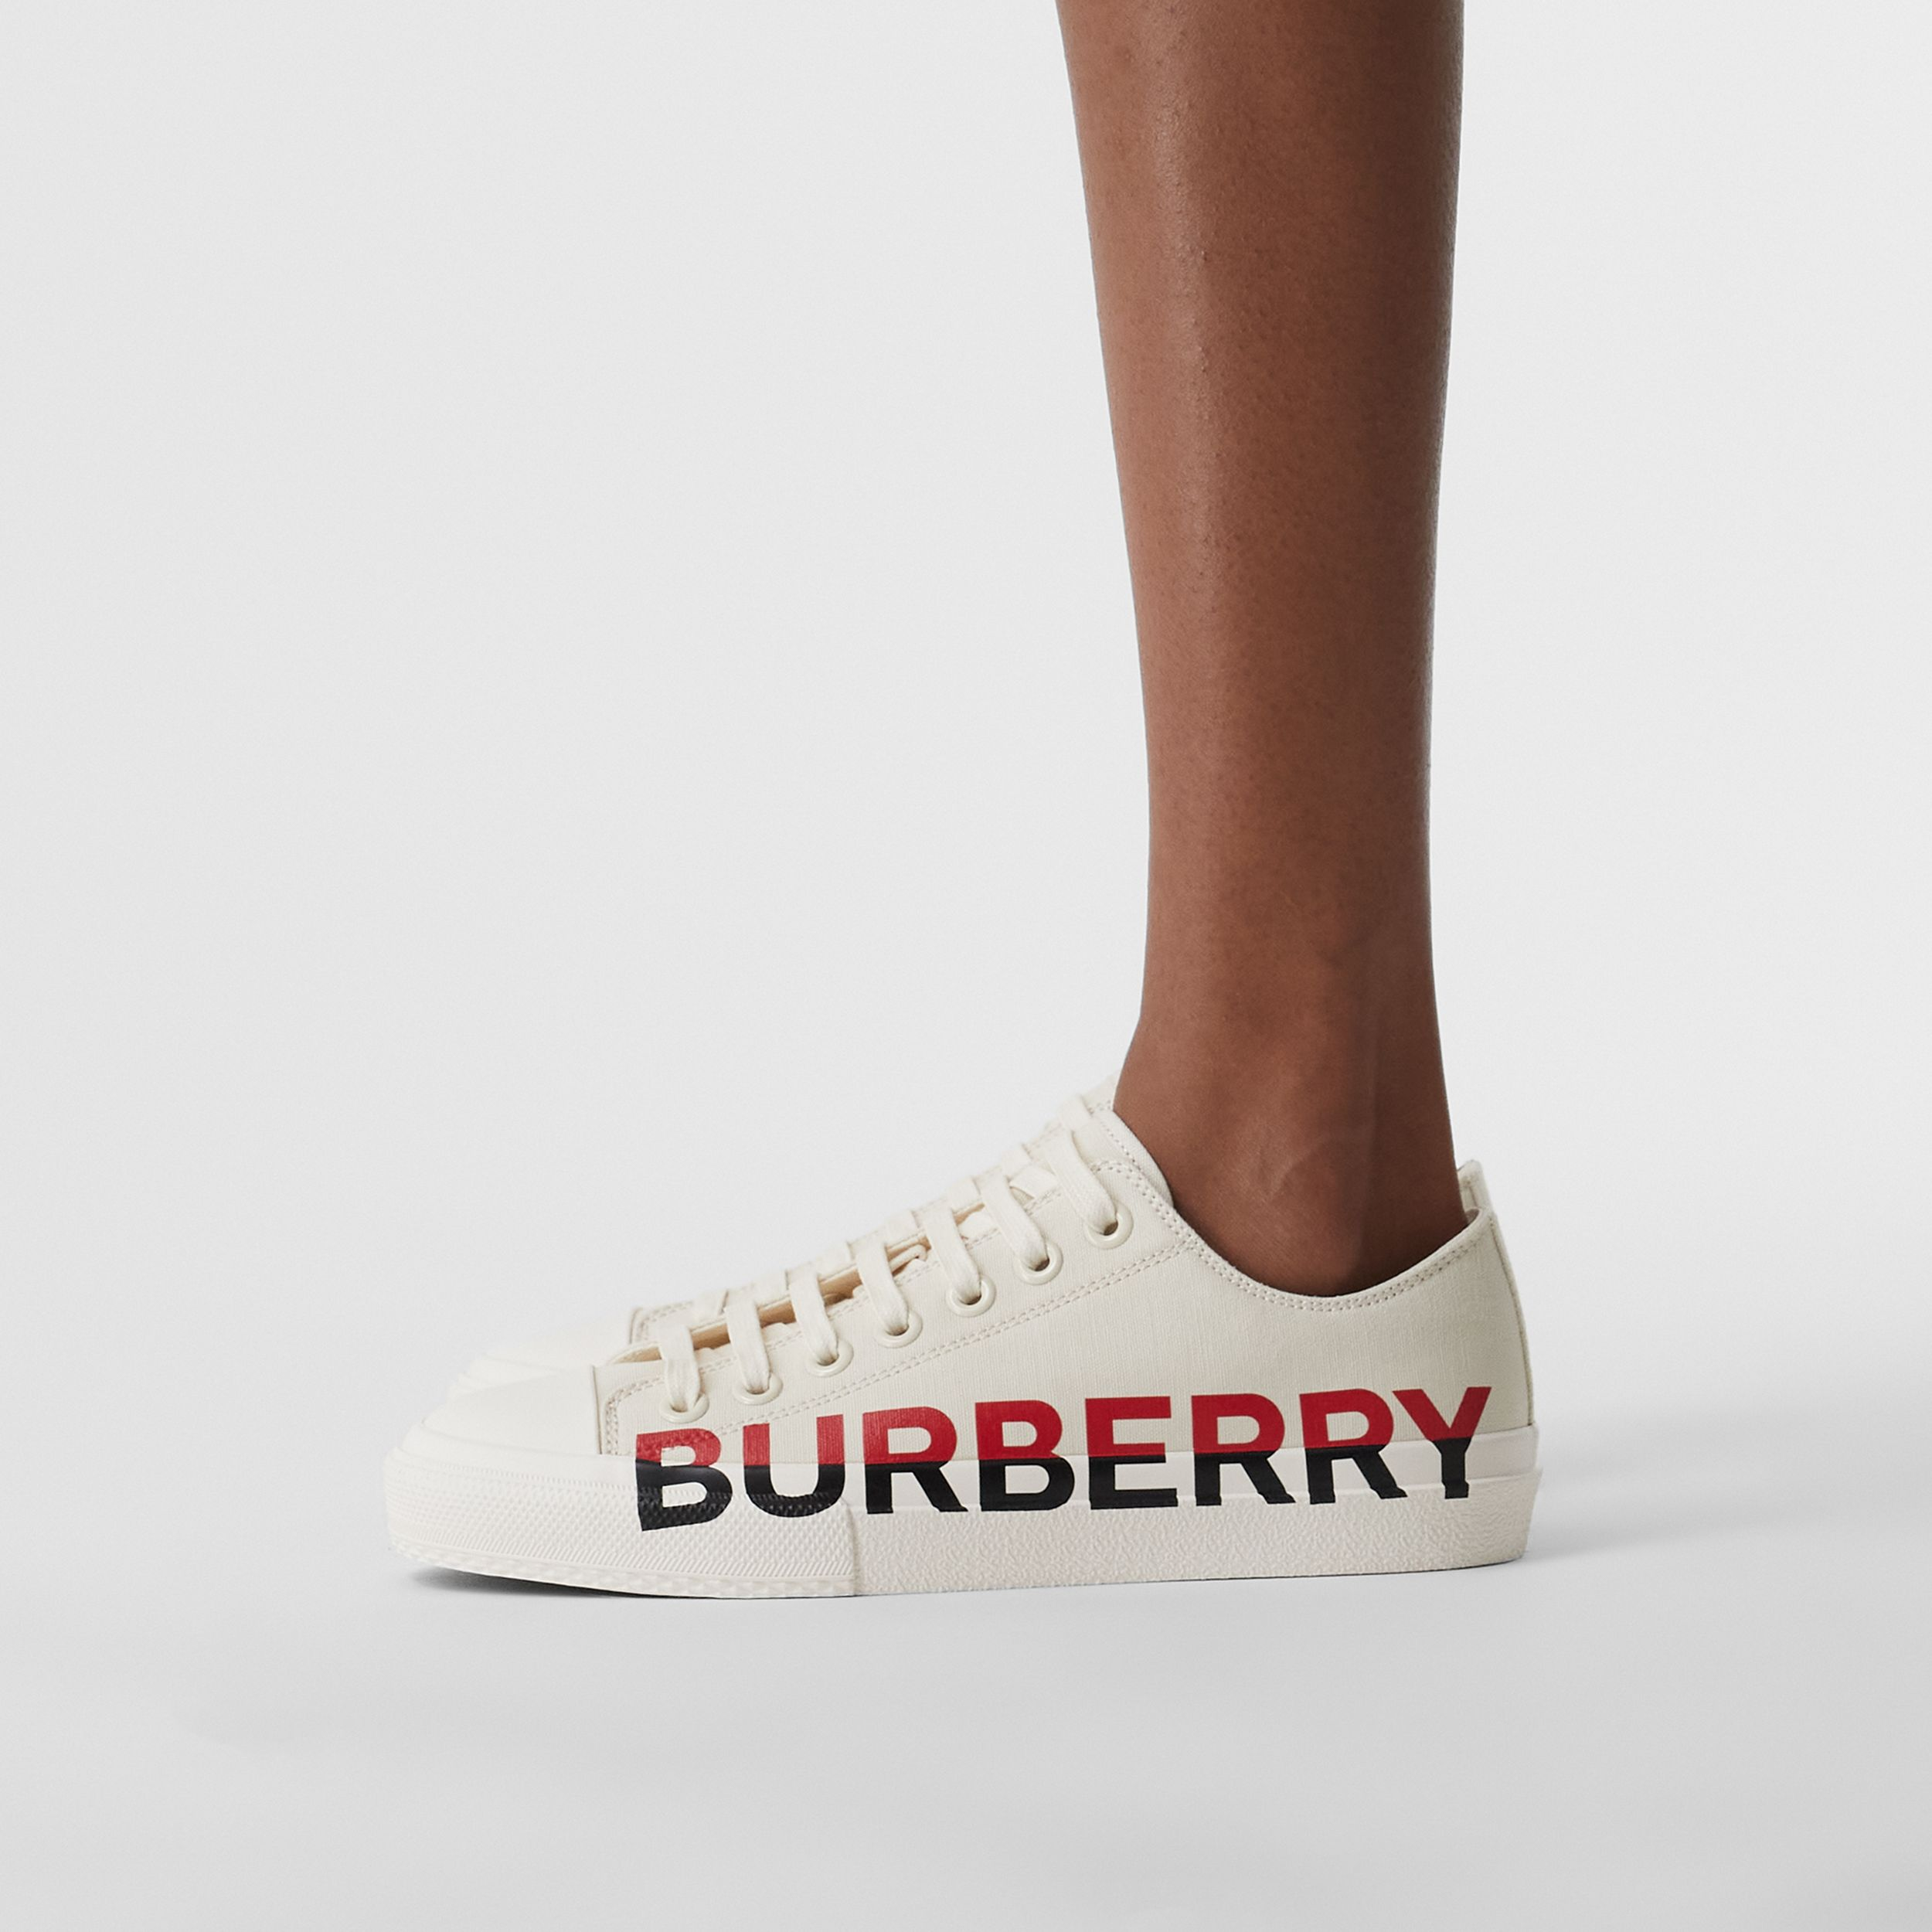 Logo Print Cotton Canvas Sneakers in Cream - Women | Burberry United States - 3